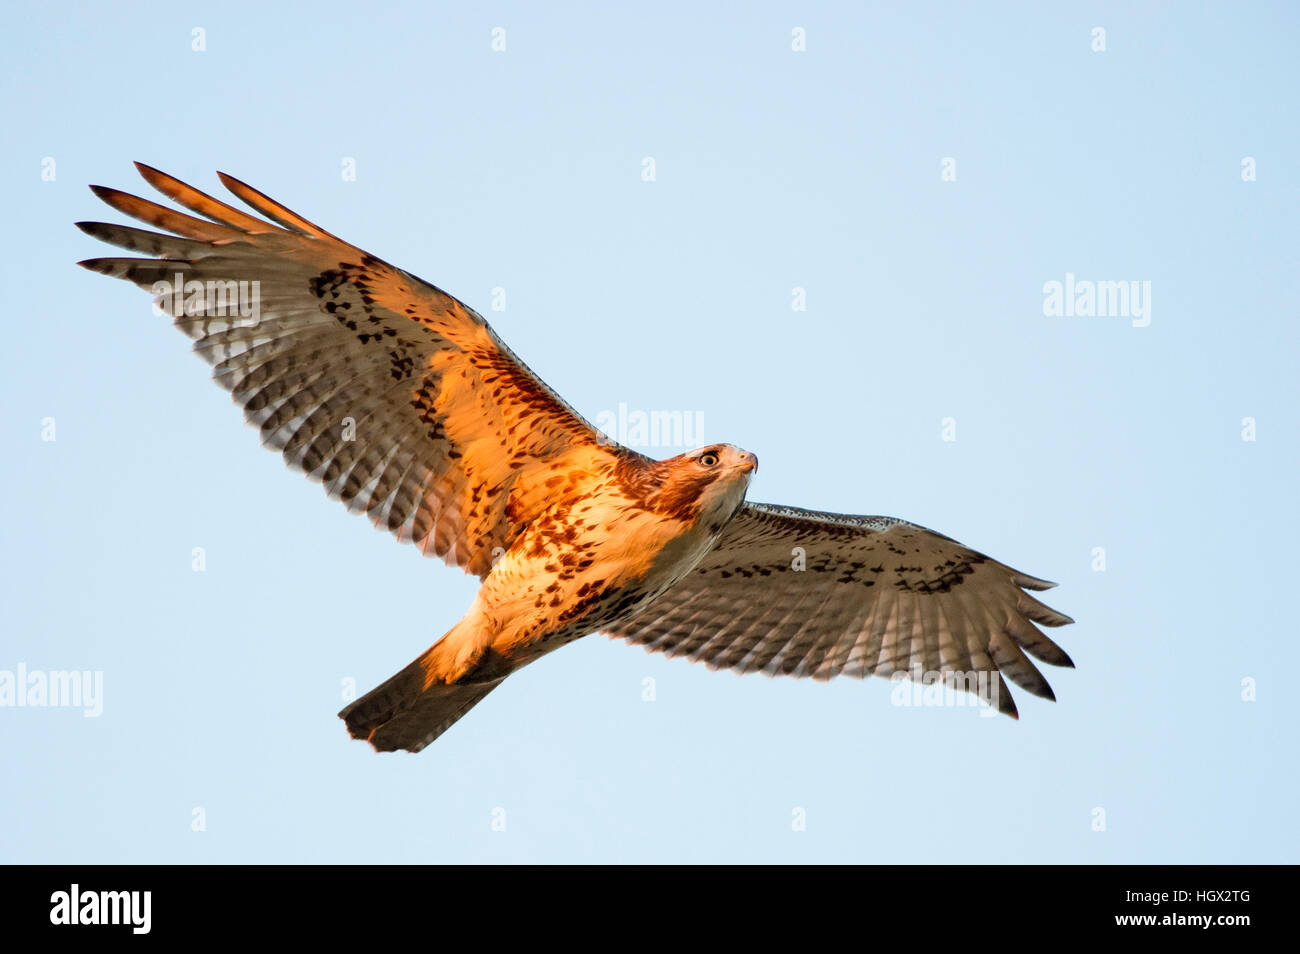 A Red-tailed Hawk flies overhead as the first morning sun shines on its body. - Stock Image